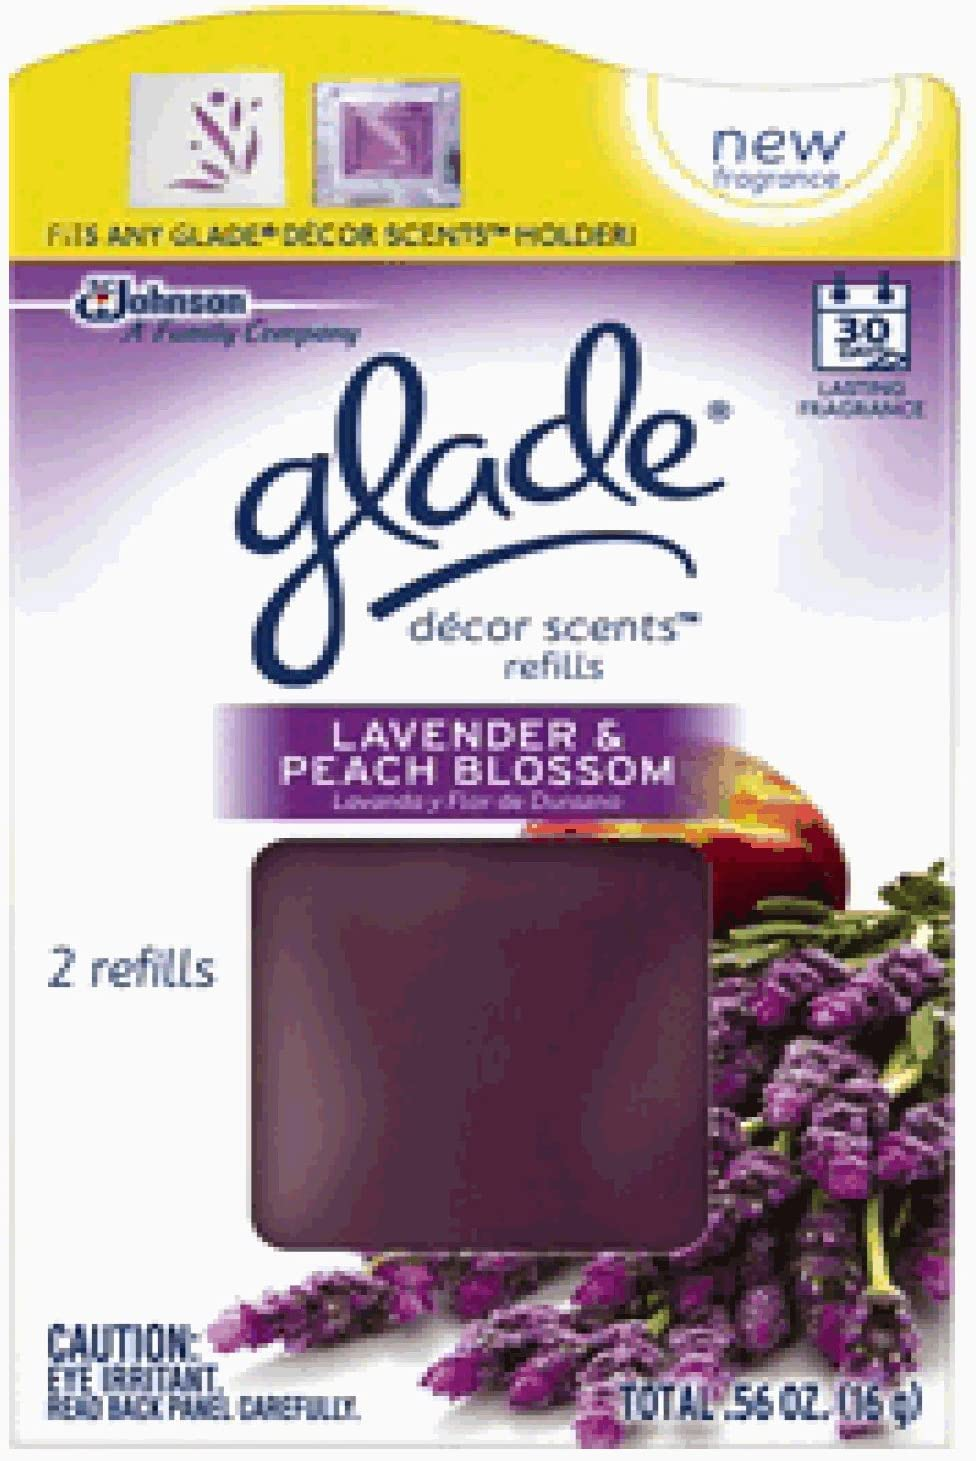 Glade Décor Scents Refill, Lavender and Peach Blossom, 0.56 Ounce